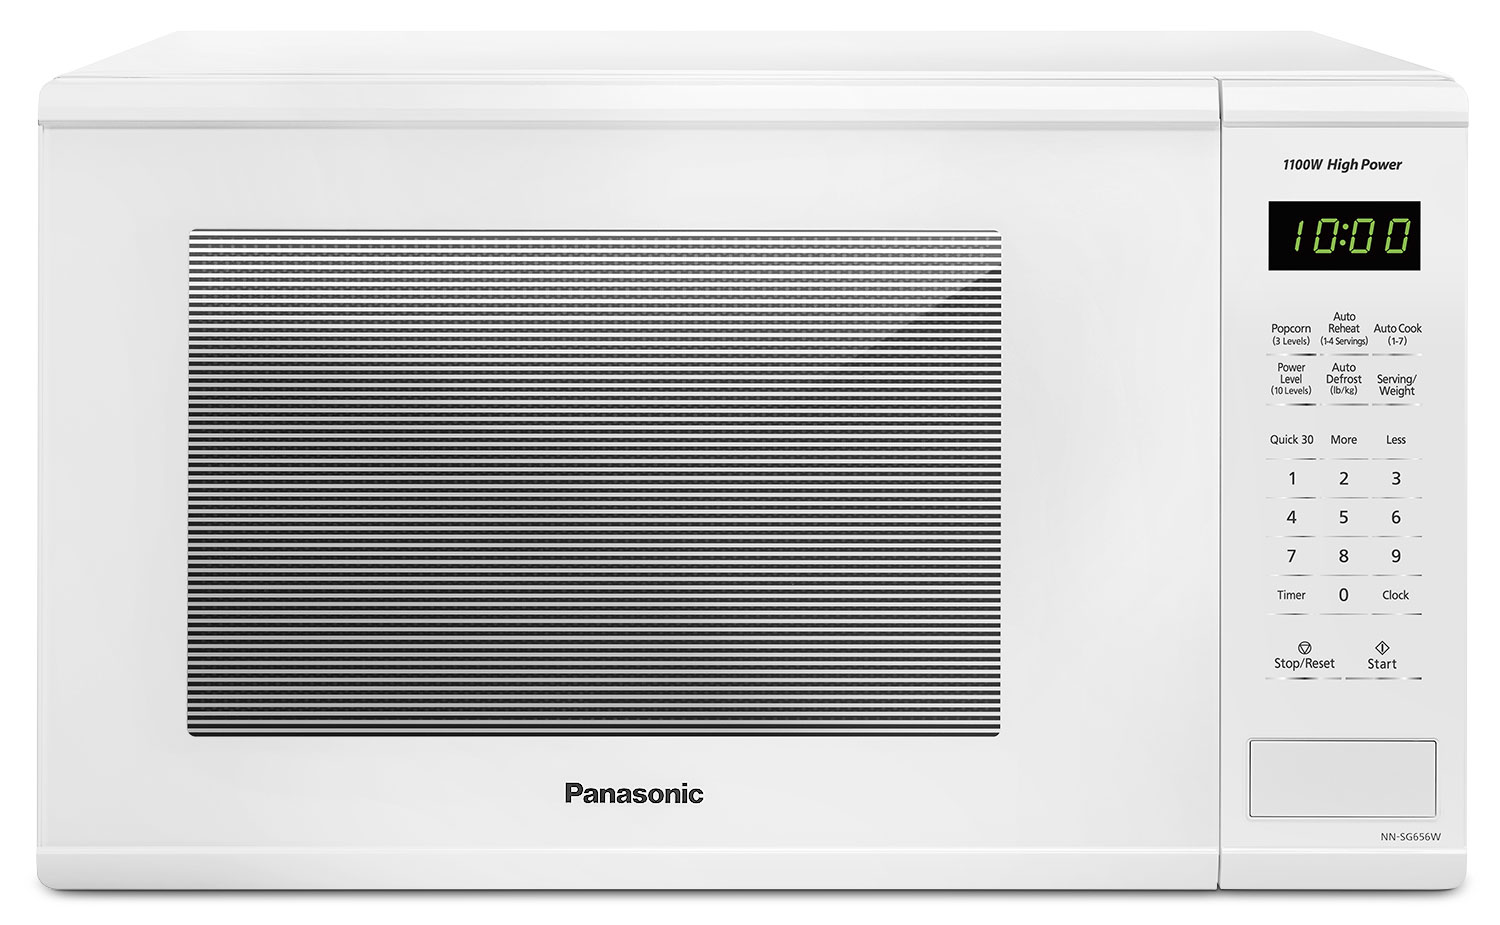 Panasonic 1.3 Cu. Ft. Countertop Microwave – NNSG656W